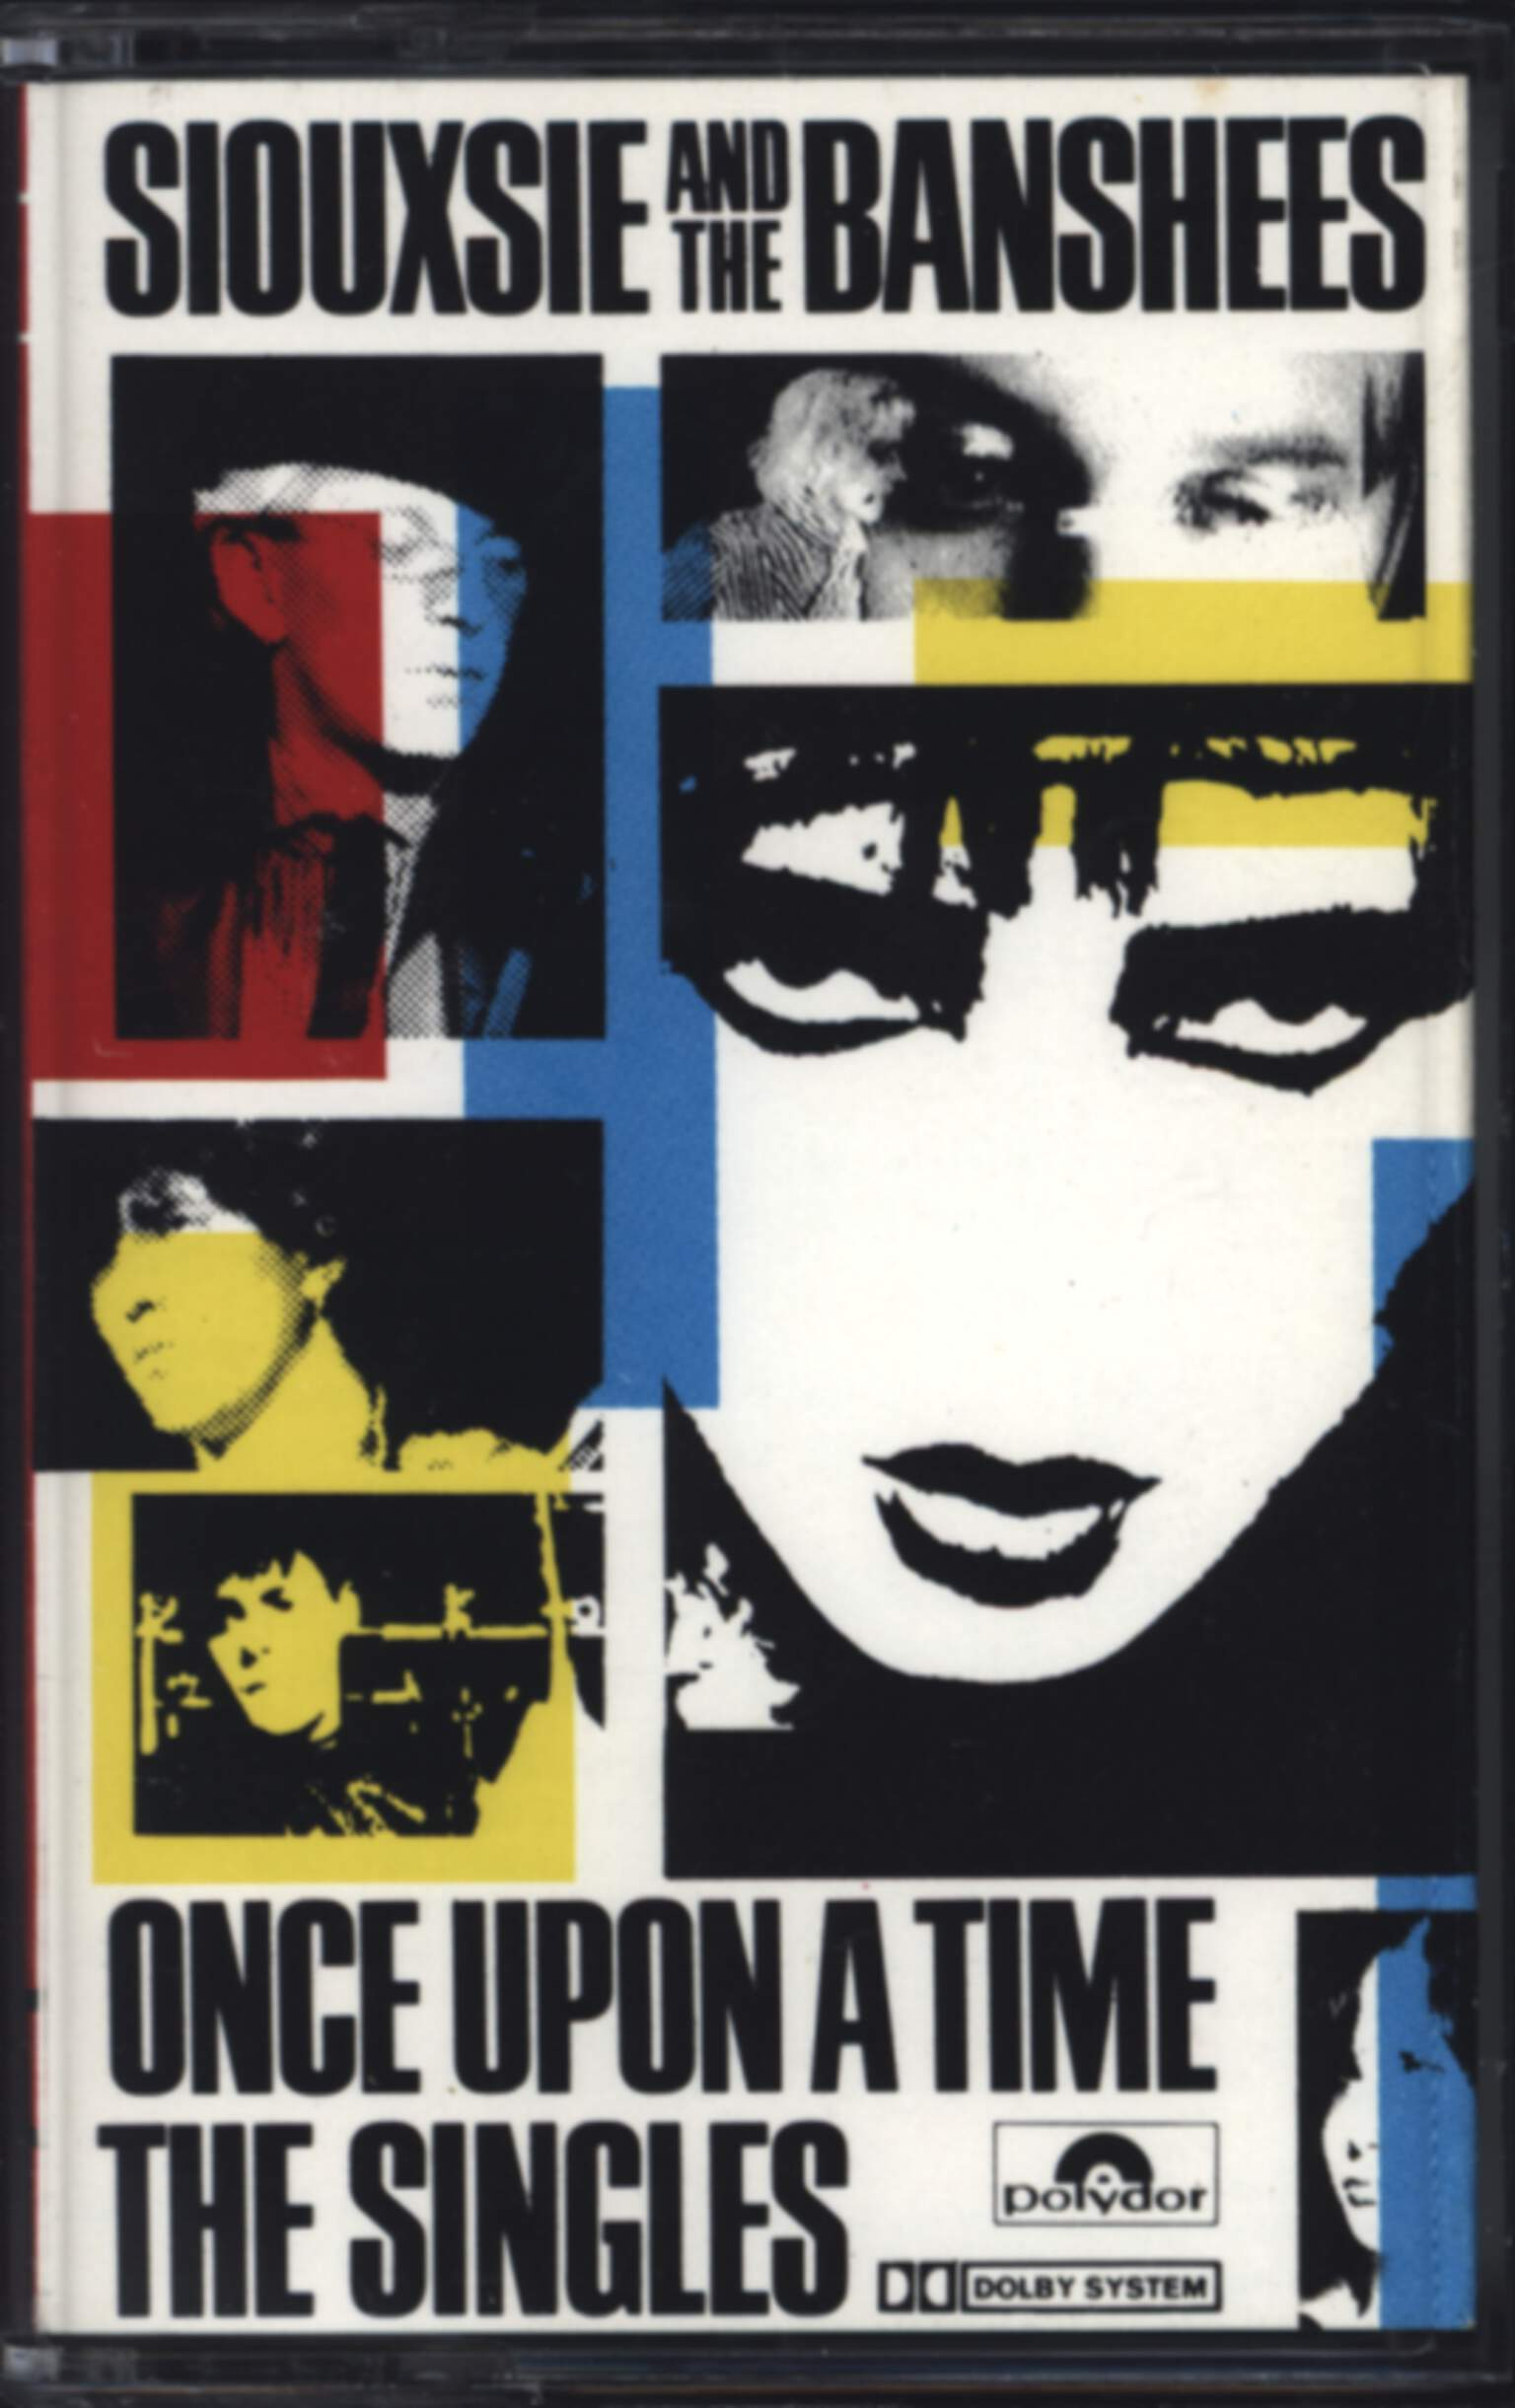 Siouxsie & the Banshees: Once Upon A Time / The Singles, Compact Cassette